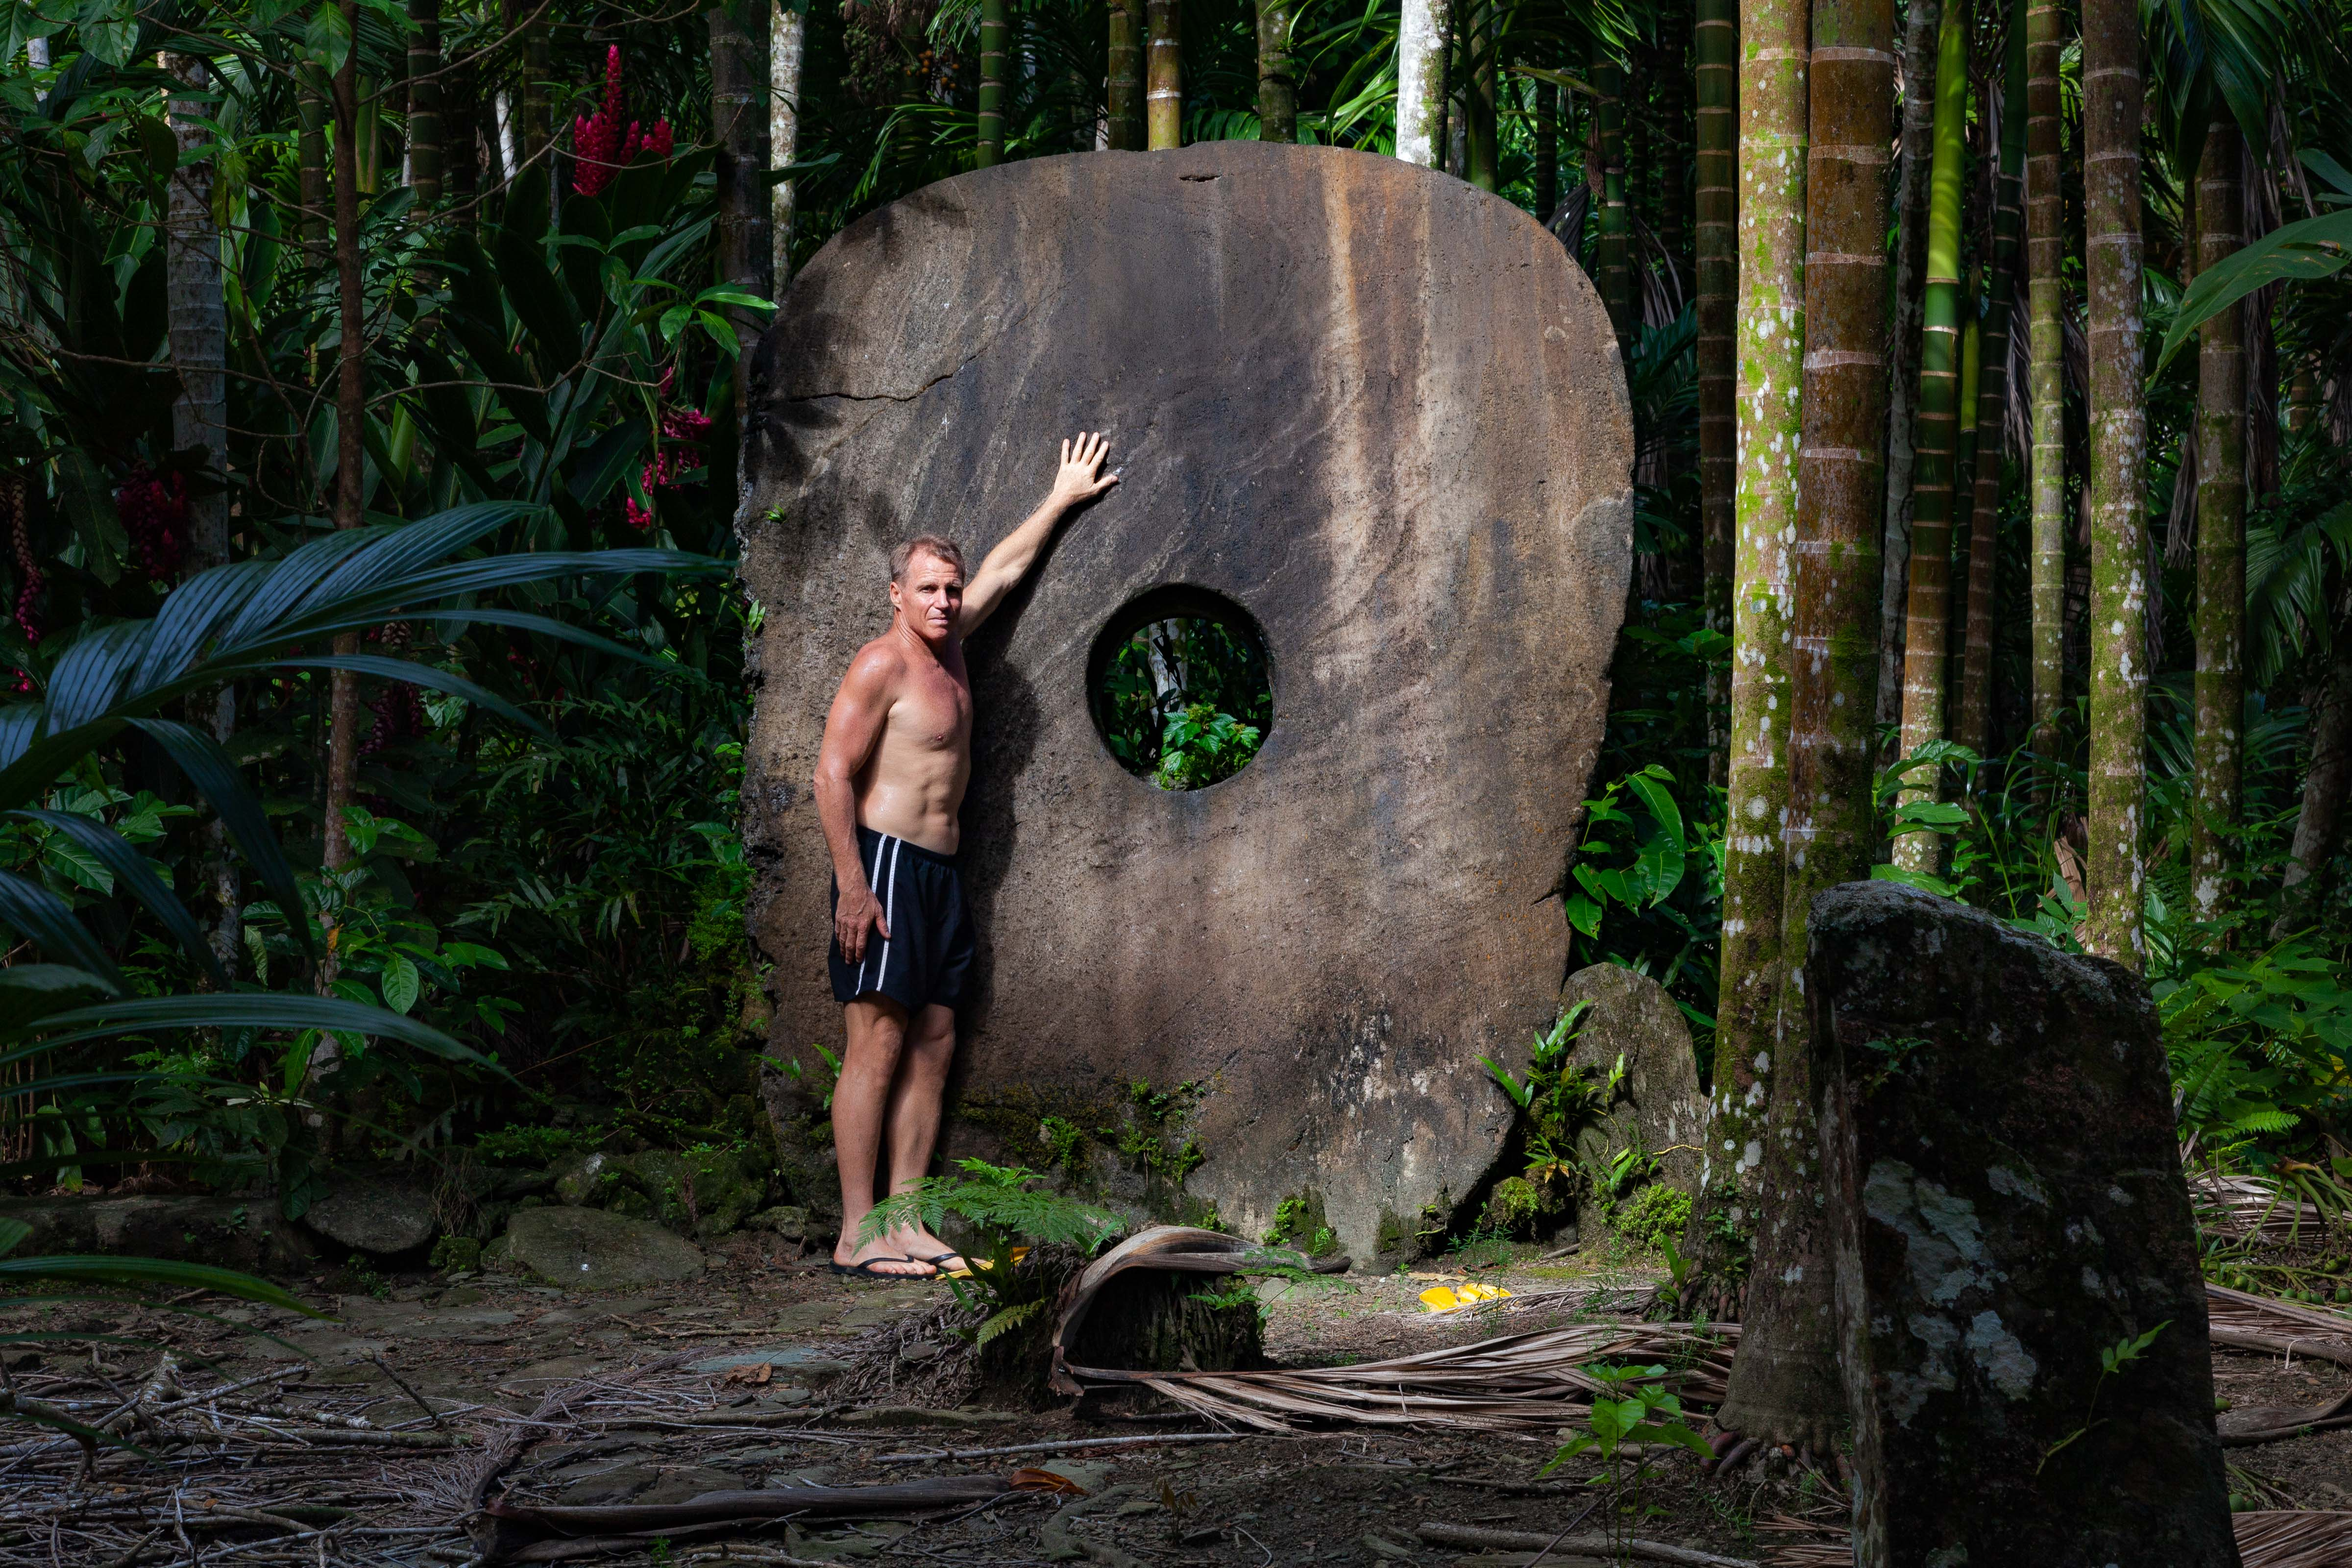 Micronesia, Yap Prov, Second Largest Stone Money In Yap And Jeff Shea, 2012, IMG 3889